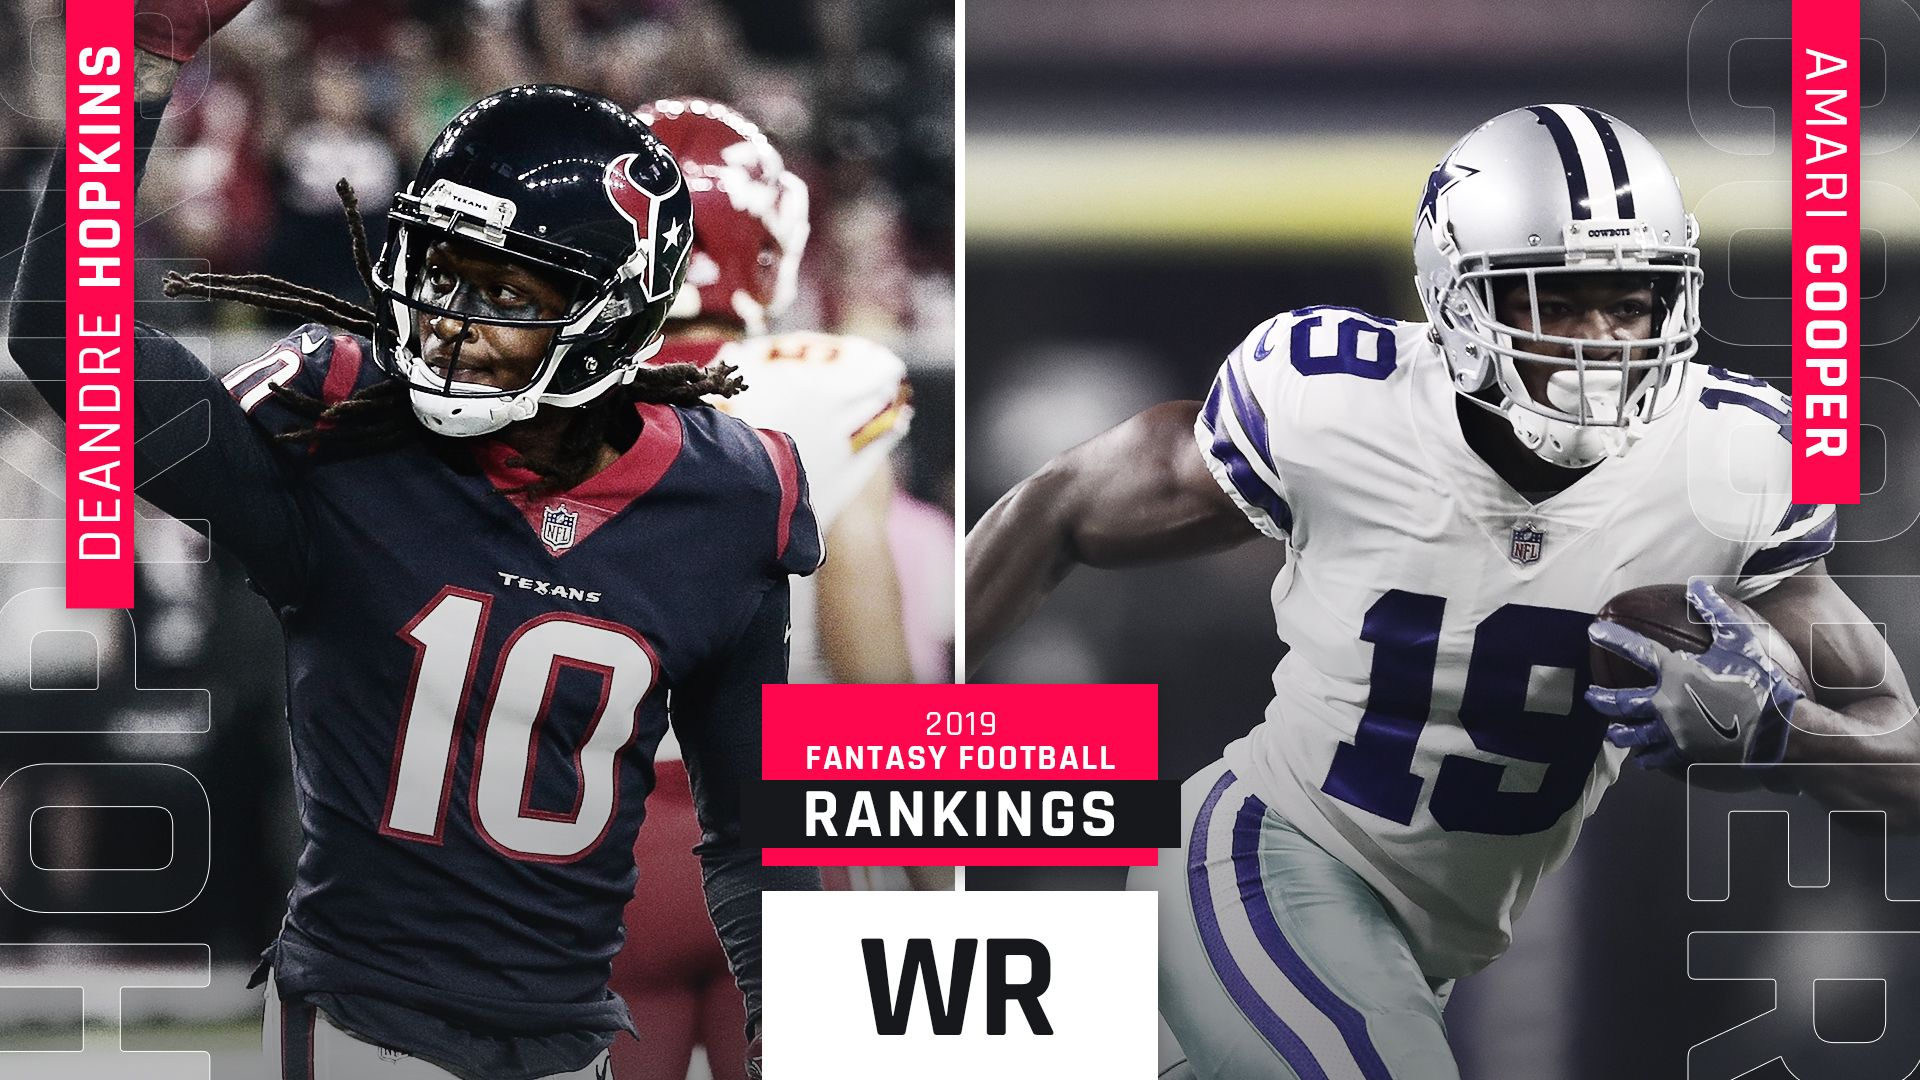 2019 Fantasy Football Wr Rankings Sporting News Fantasy Football Football Fantasy Football Shirt